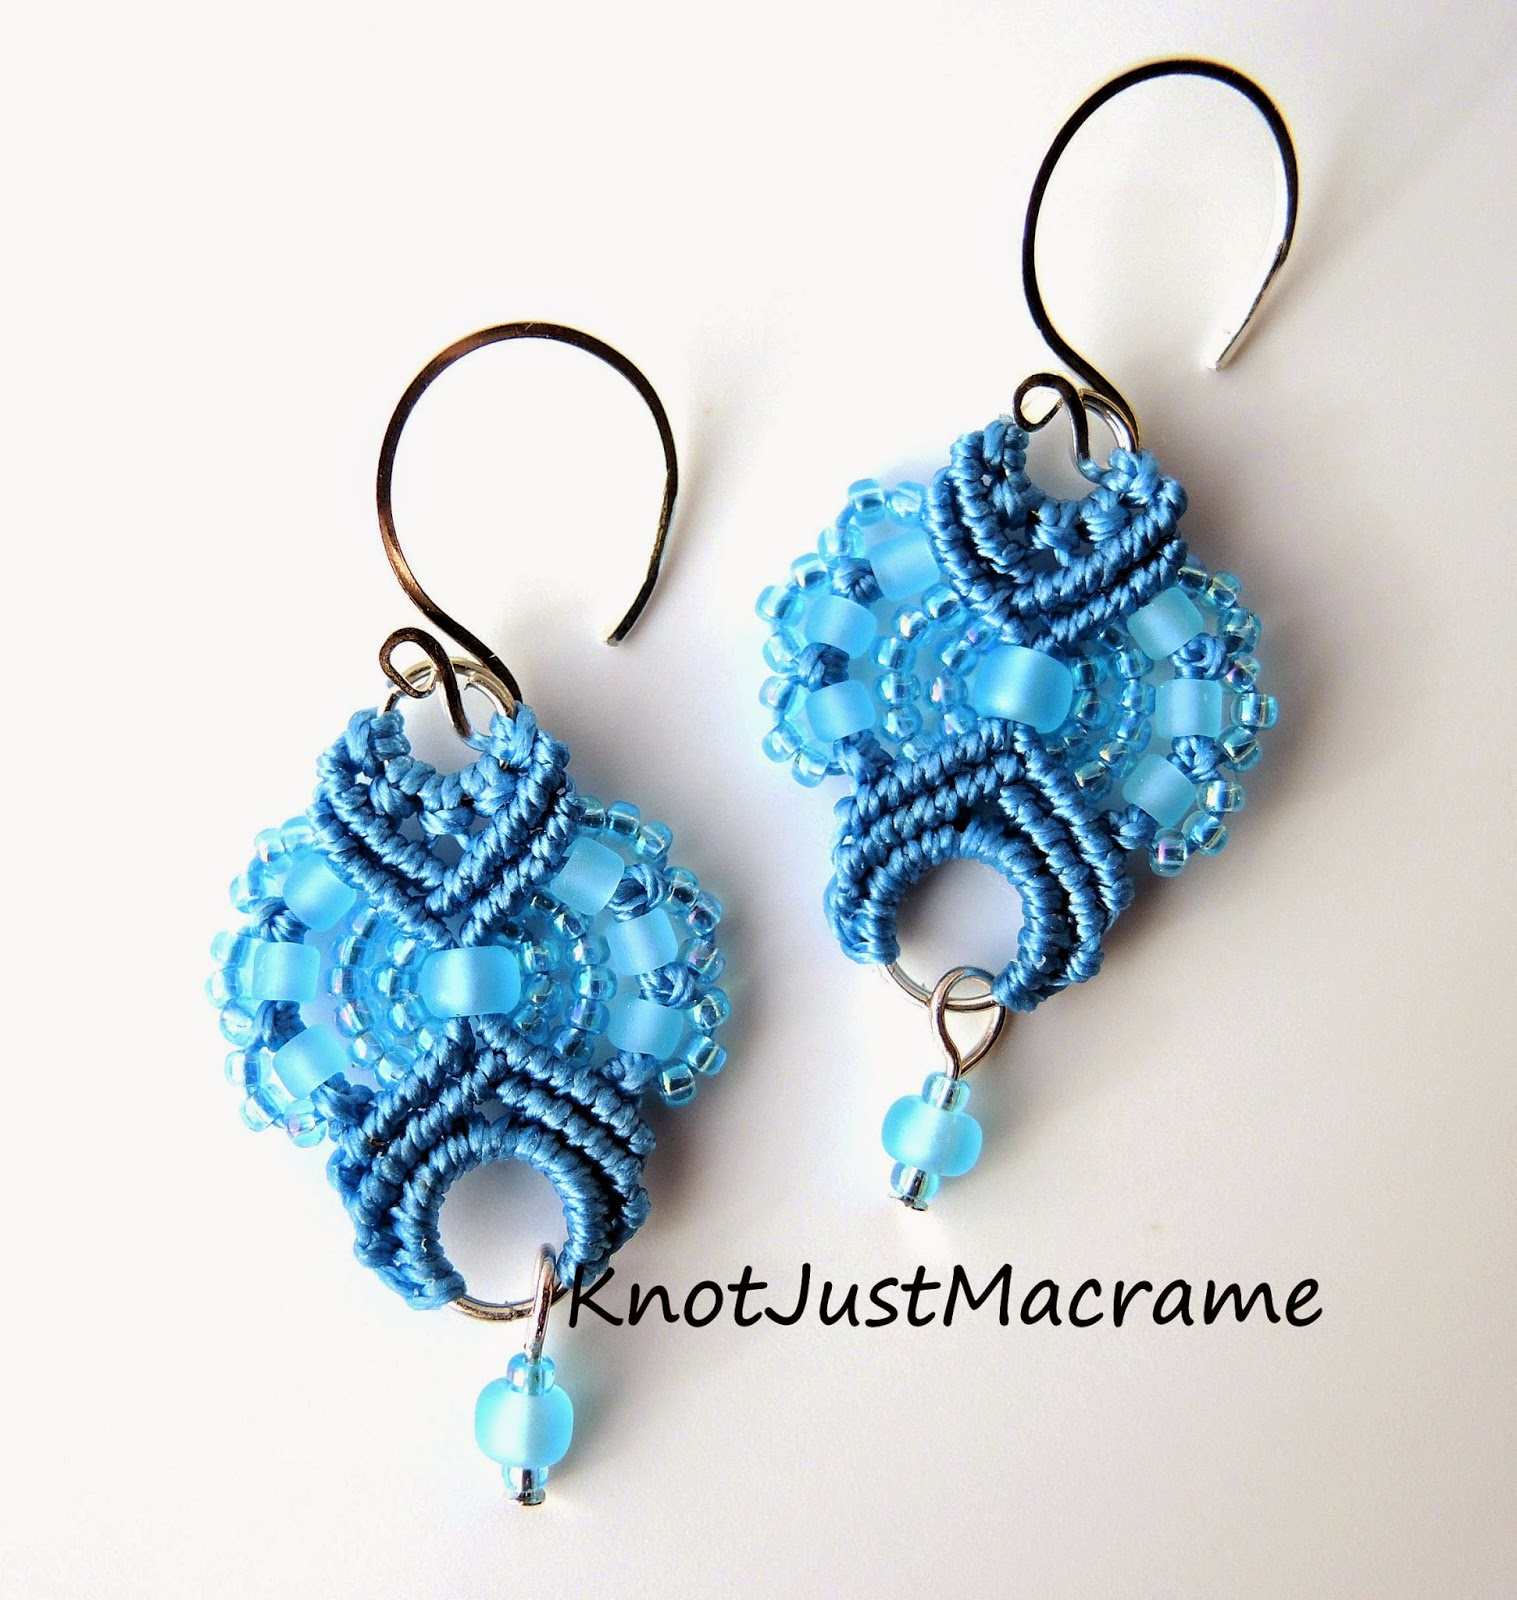 Micro macrame earrings in blue by Sherri Stokey of Knot Just Macrame.